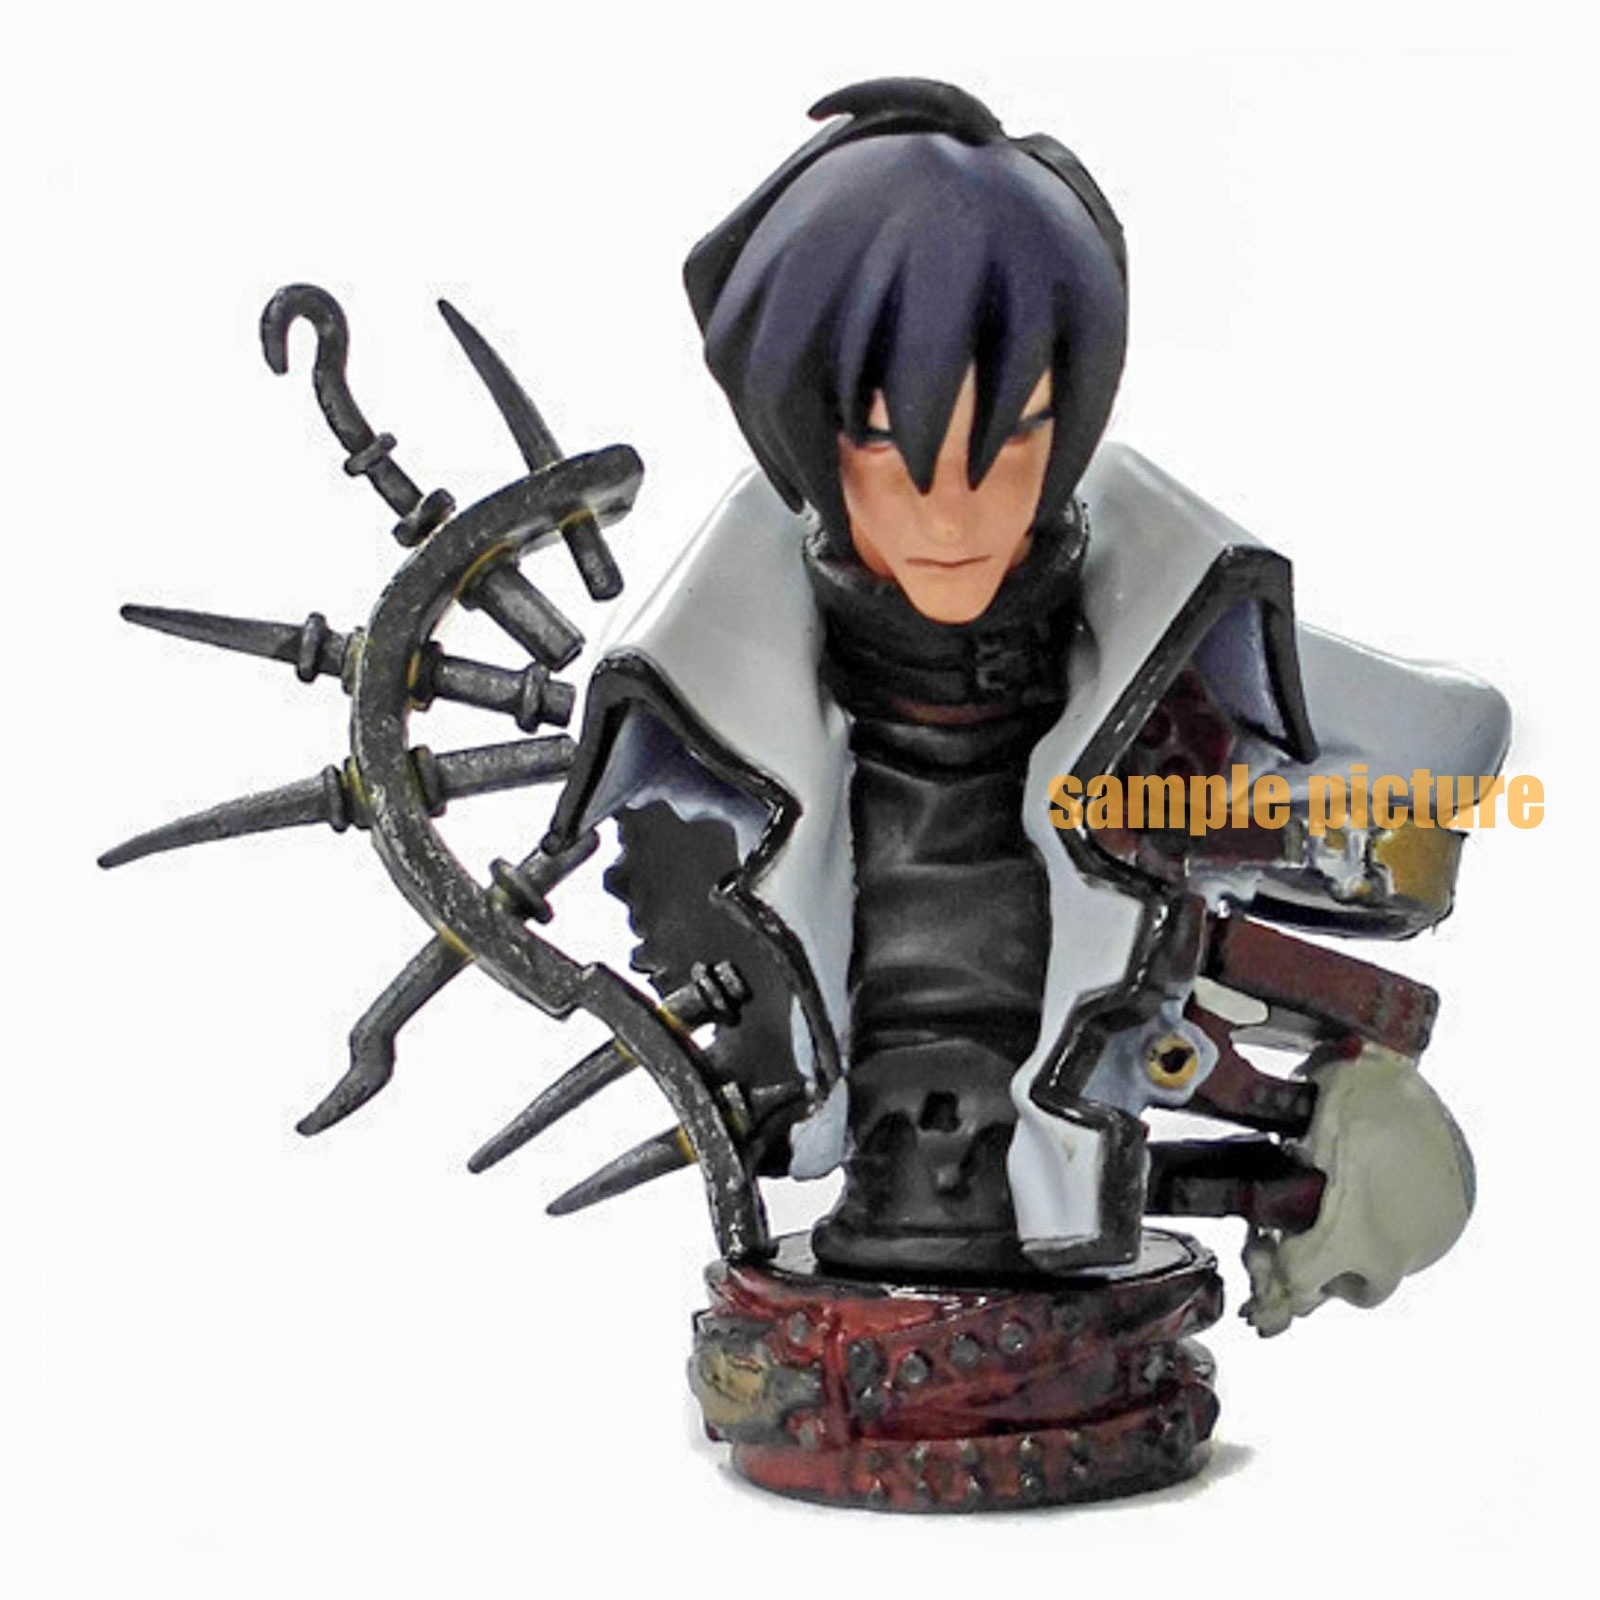 TRIGUN Legato Bluesummers K & M Bustup Model Series Figure Kaiyodo JAPAN ANIME